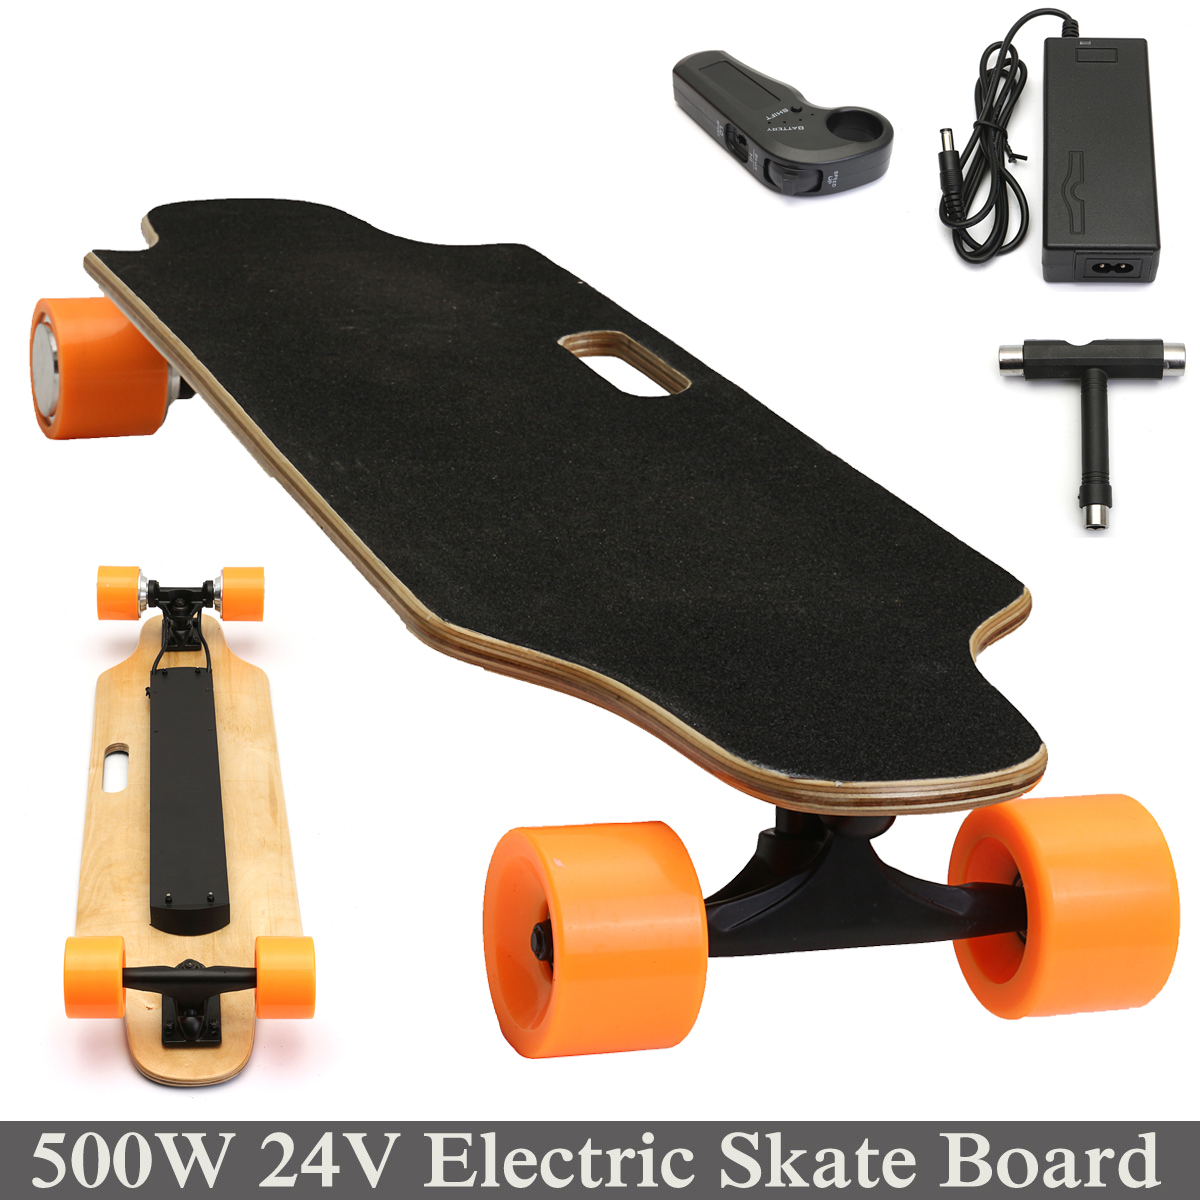 Click here to buy 24V 500W Wireless Double Drive Remote Controller Electric Skateboard Skate Board Longboard.